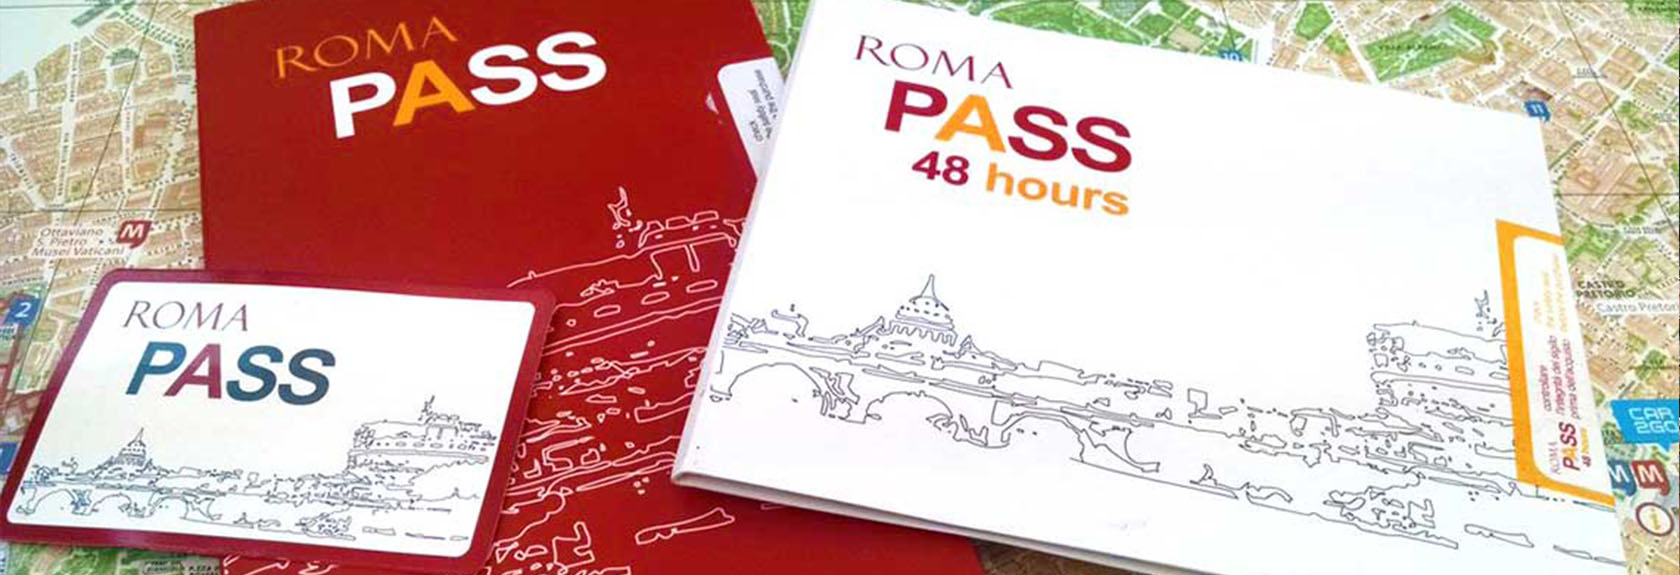 Roma Pass – kortingskaart in Rome